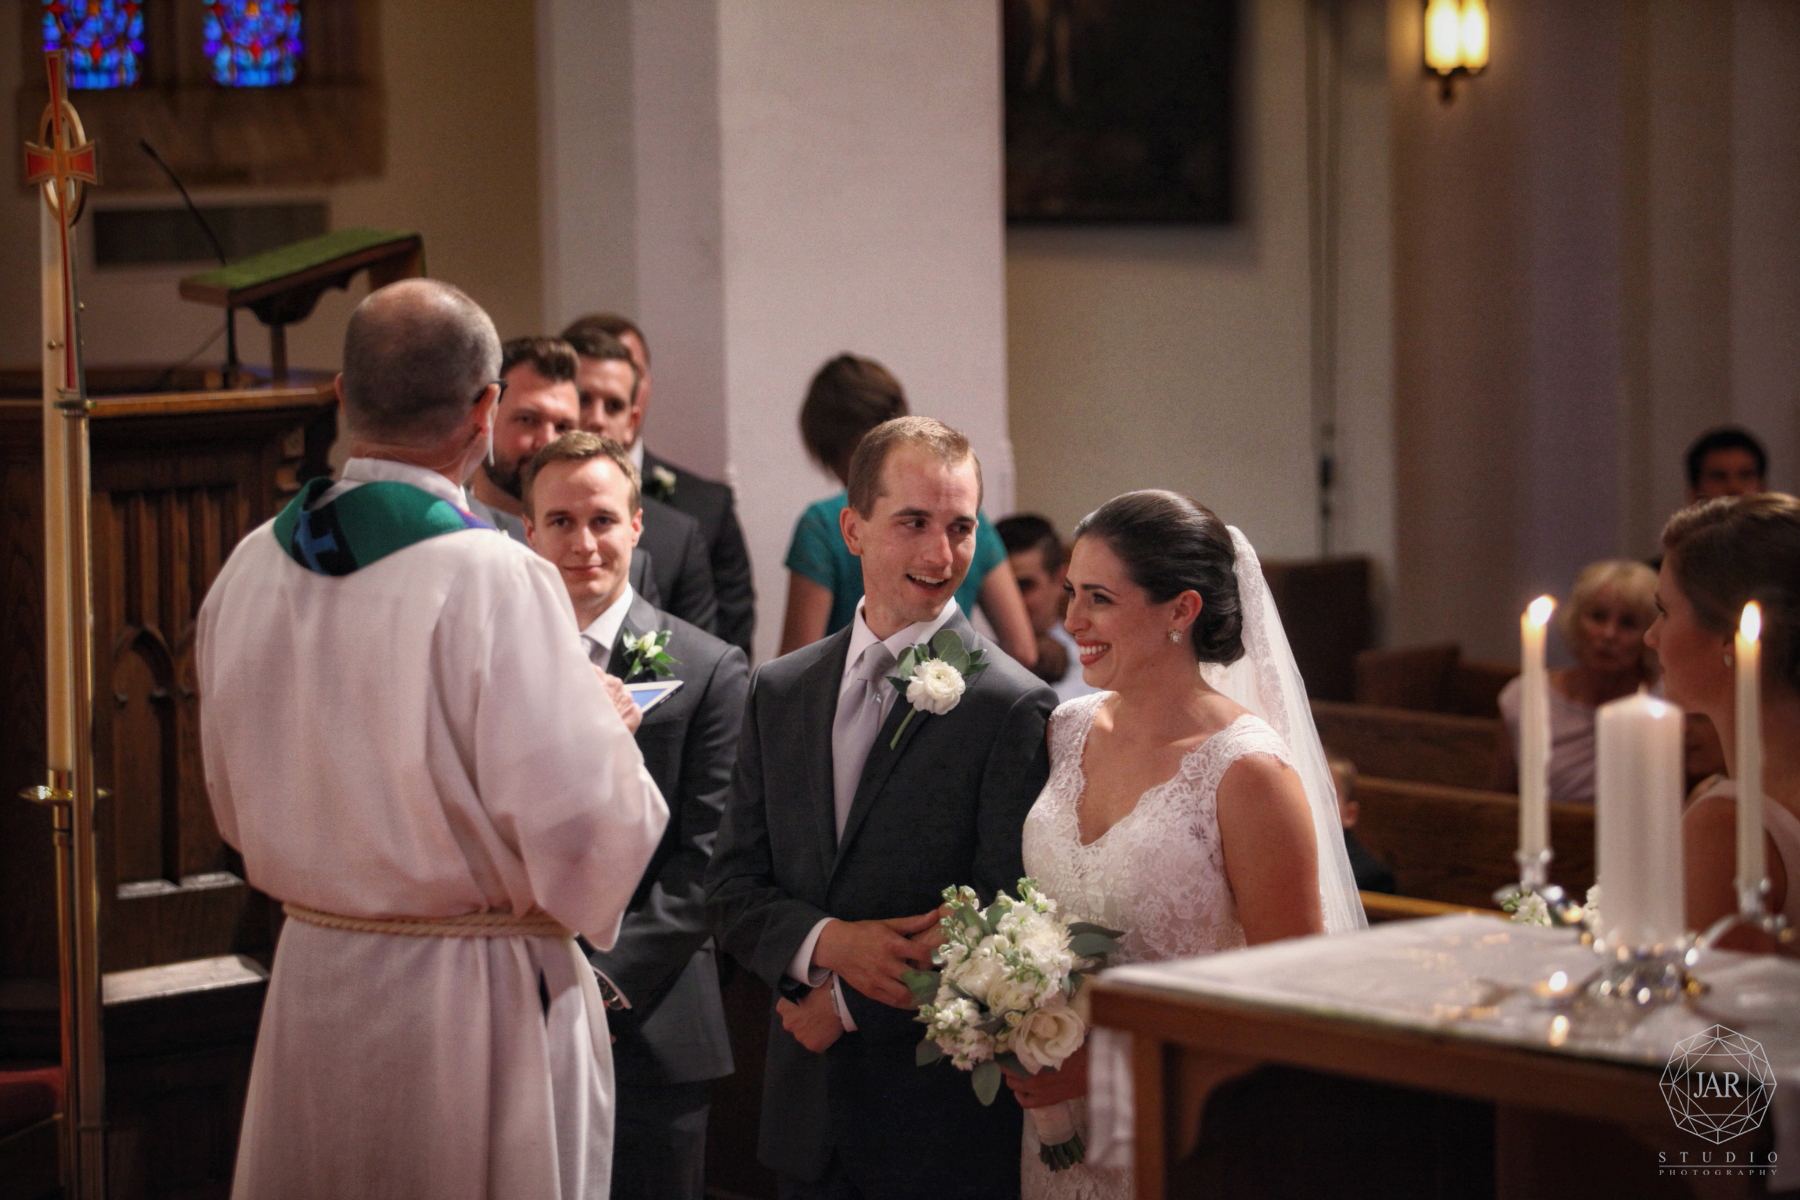 20-we-are-getting-married-small-cozy-church-jarstudio-photography-orlando.JPG